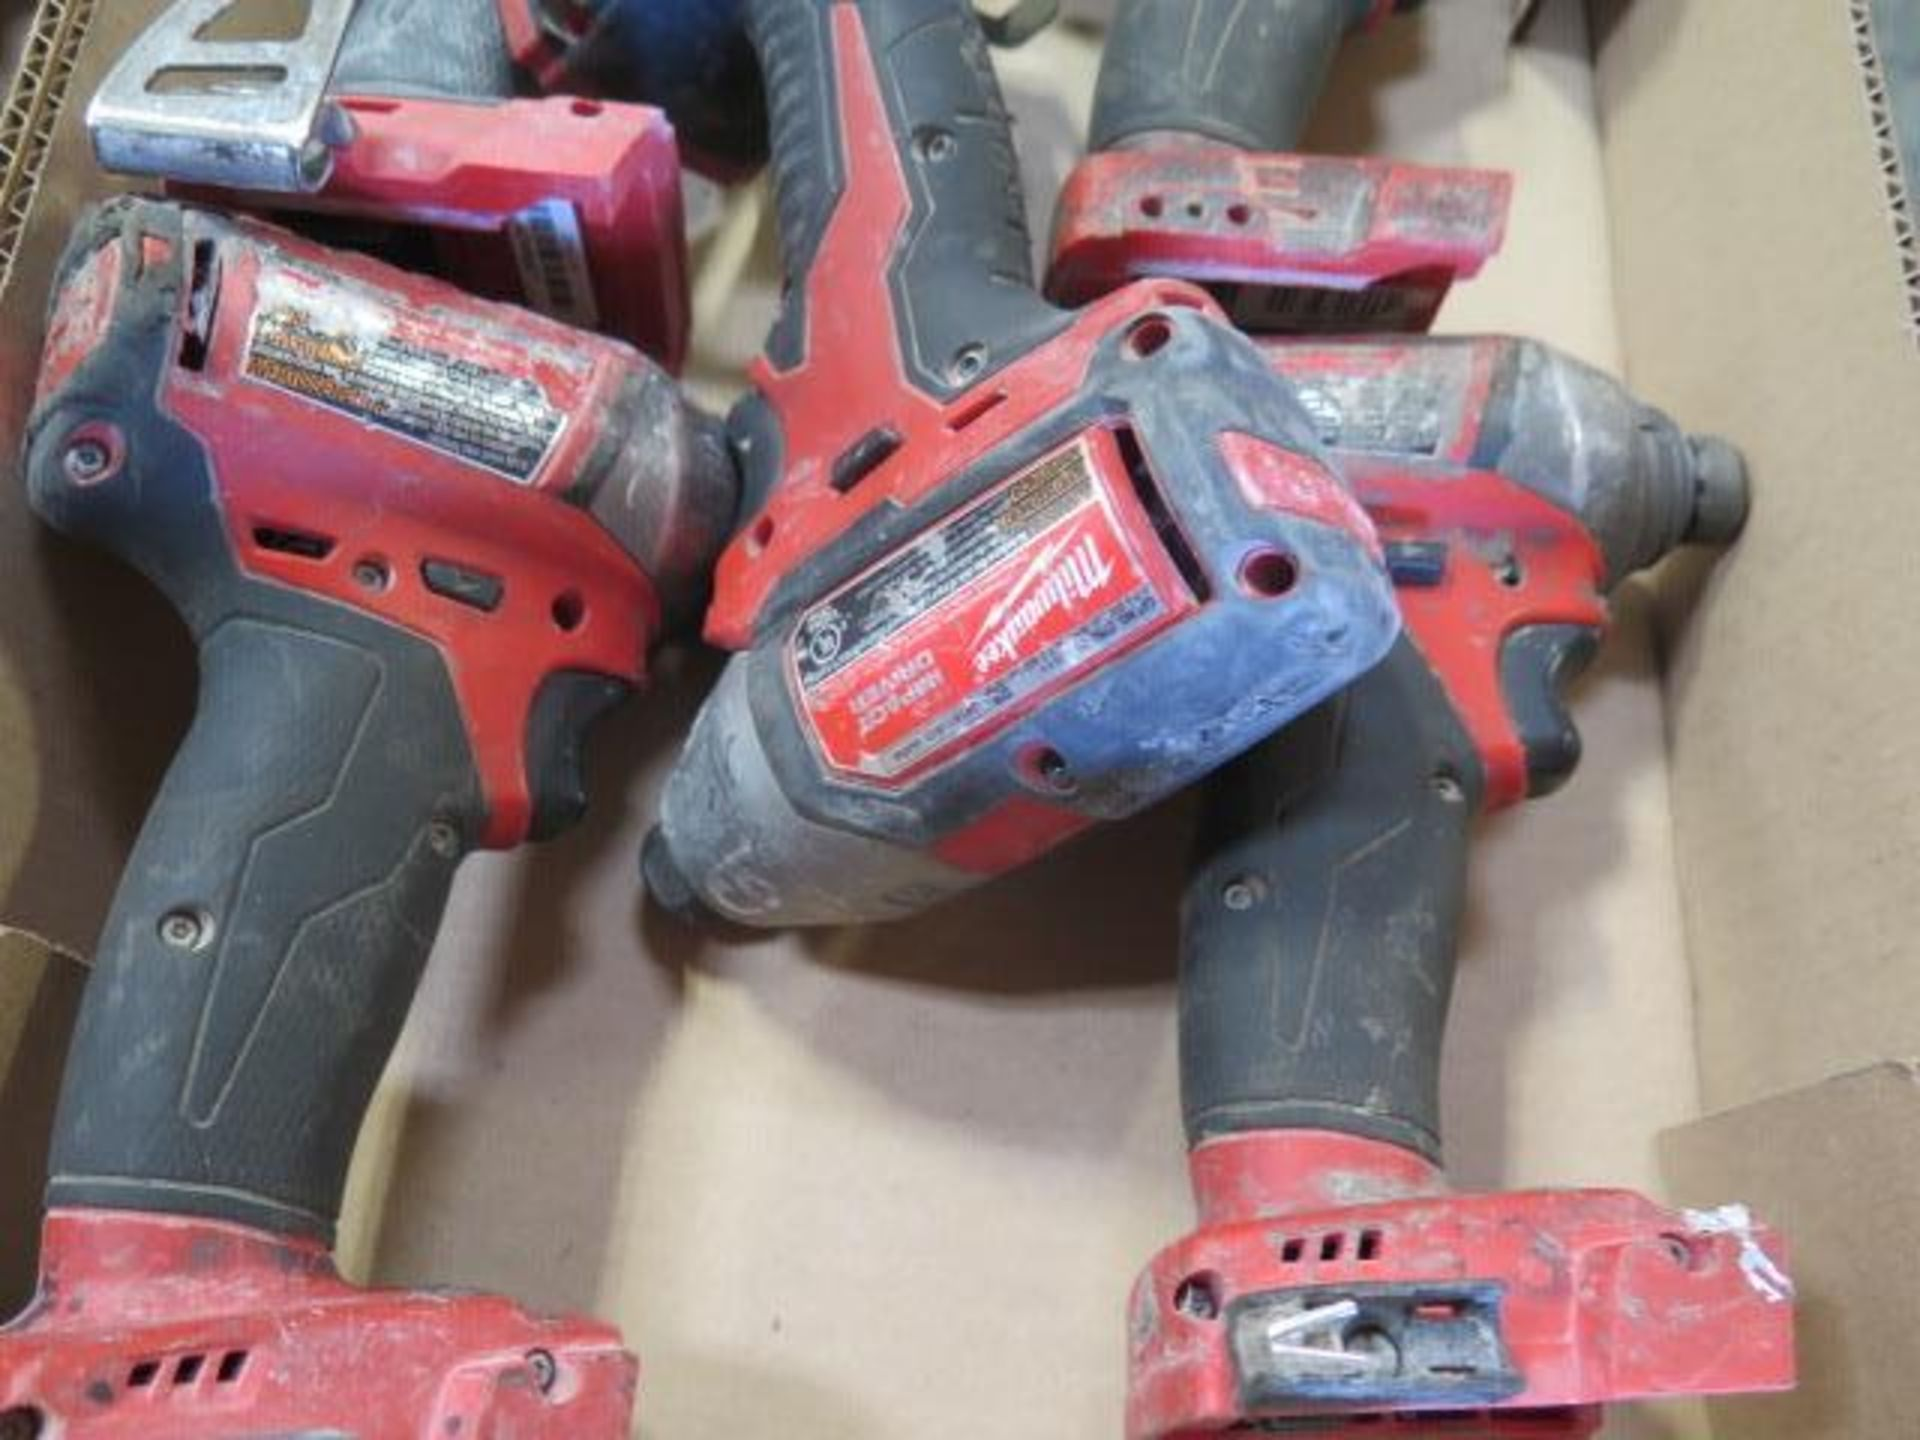 """Milwaukee 18 Volt 1/4"""" Nut Drivers (5) (SOLD AS-IS - NO WARRANTY) - Image 4 of 4"""